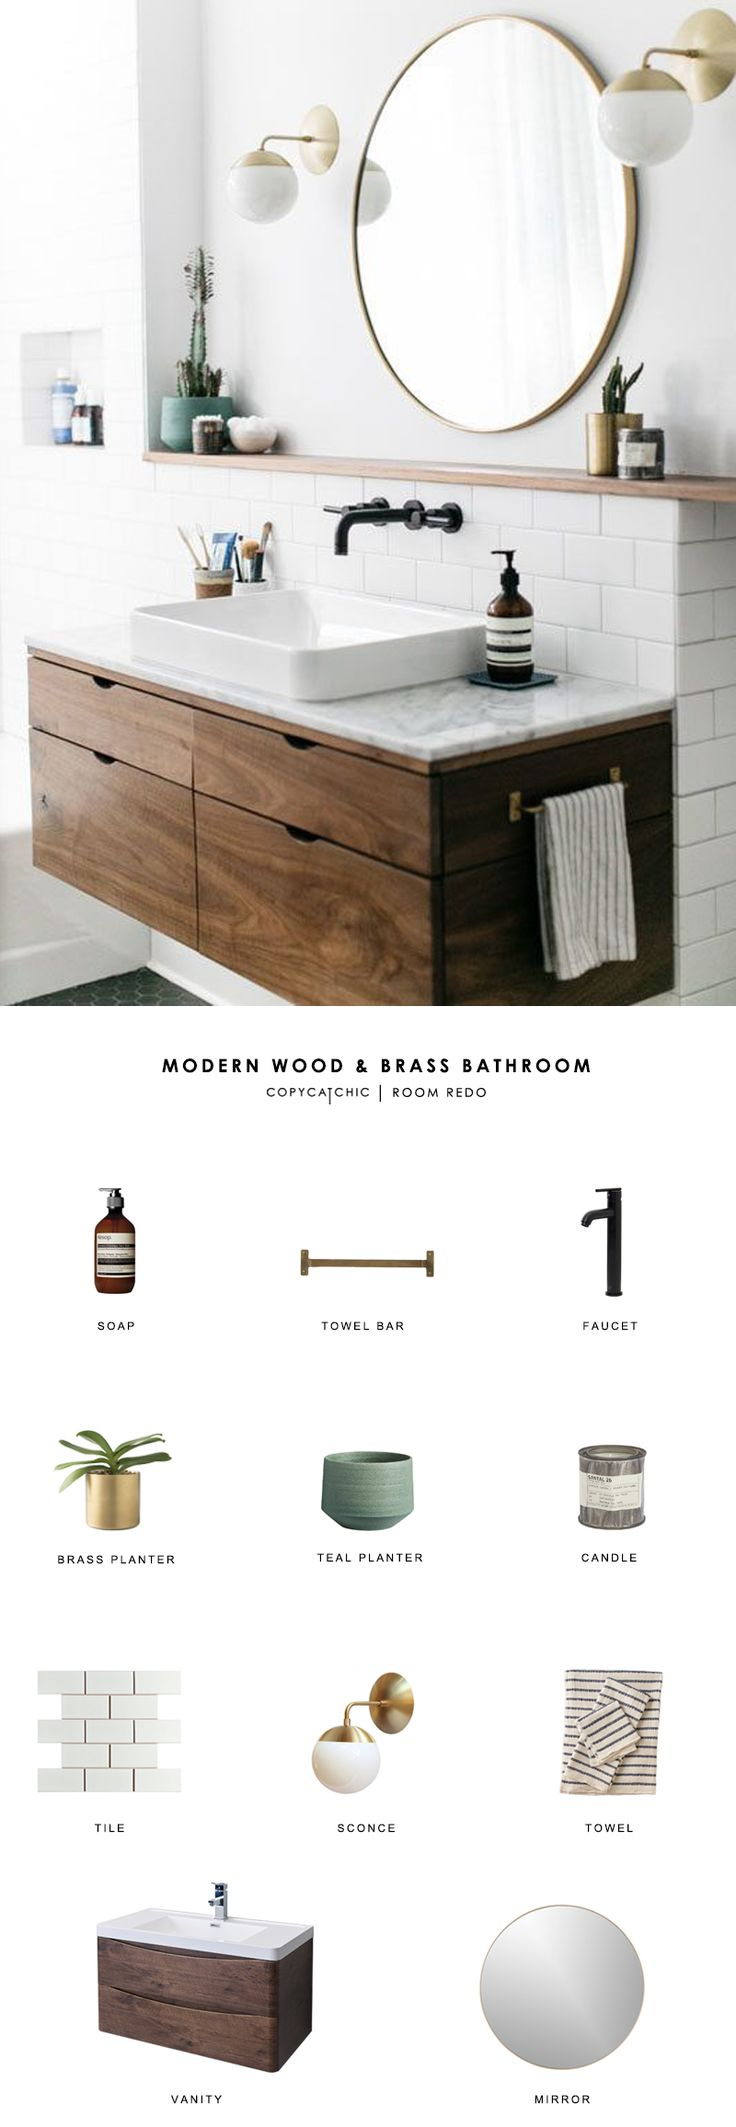 Copy Cat Chic Room Redo. Industrial BathroomBrass ...